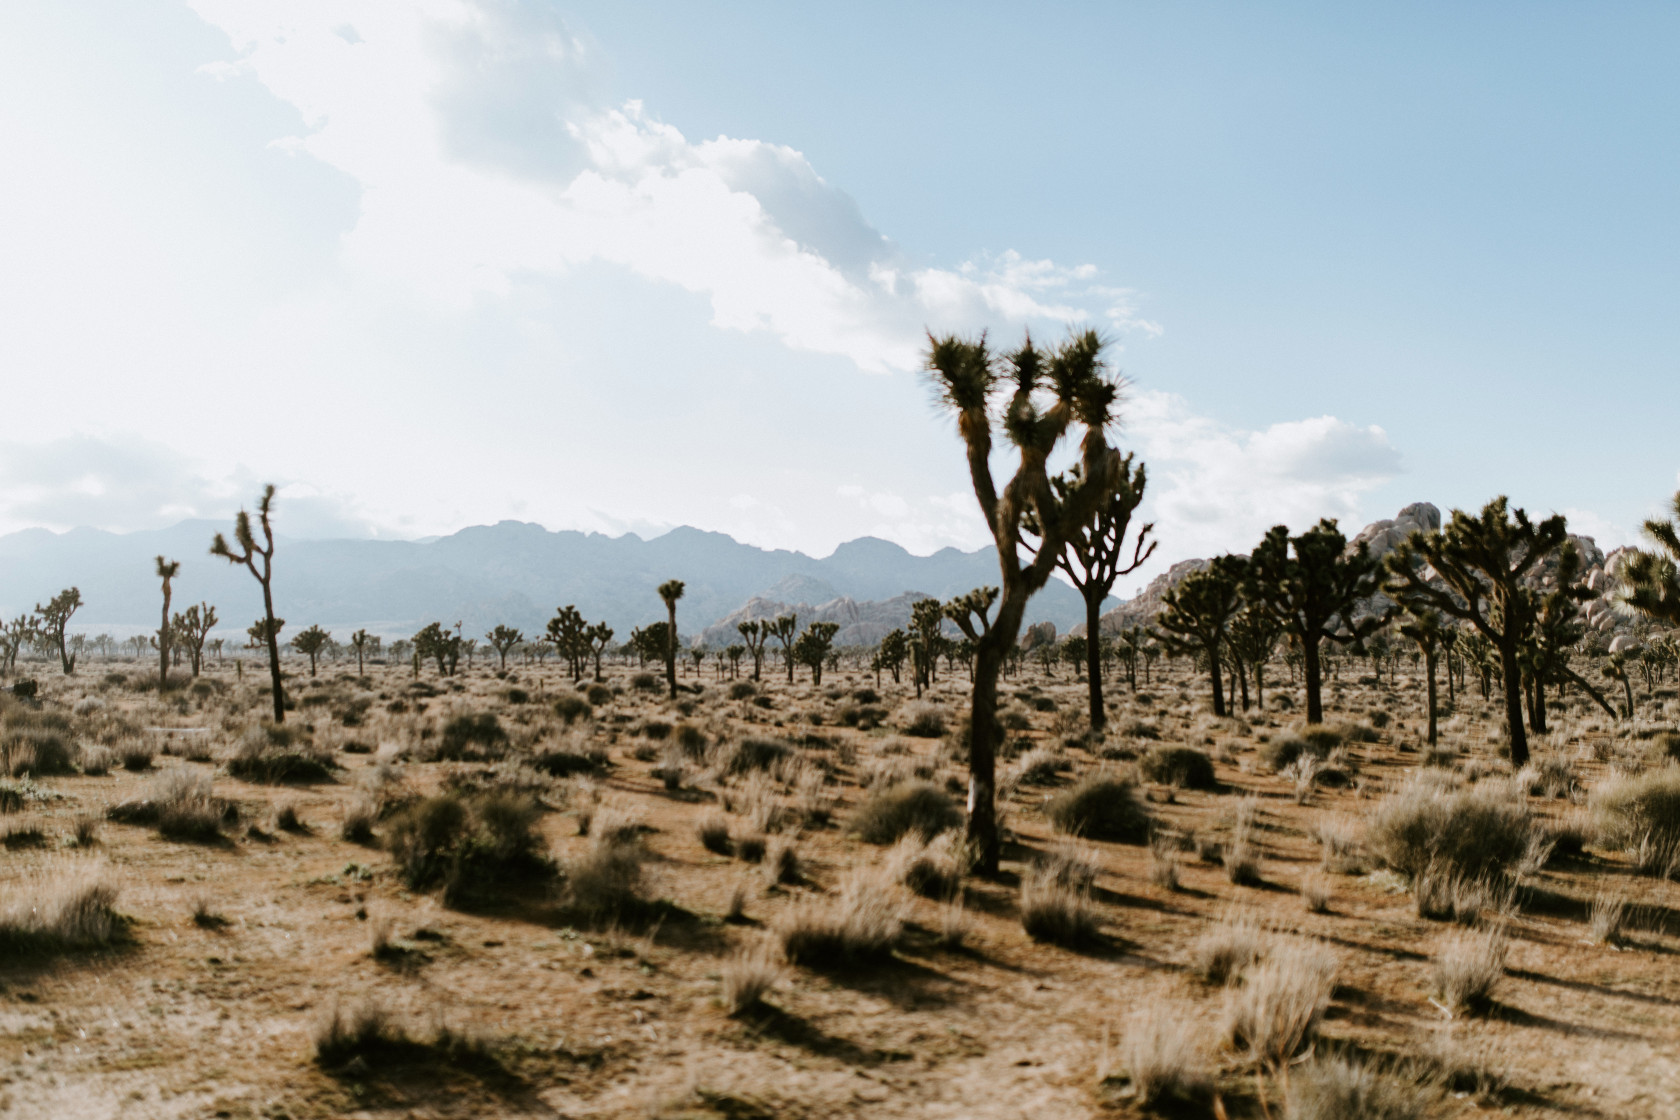 The view of Joshua Tree National Park, CA Elopement wedding photography at Joshua Tree National Park by Sienna Plus Josh.